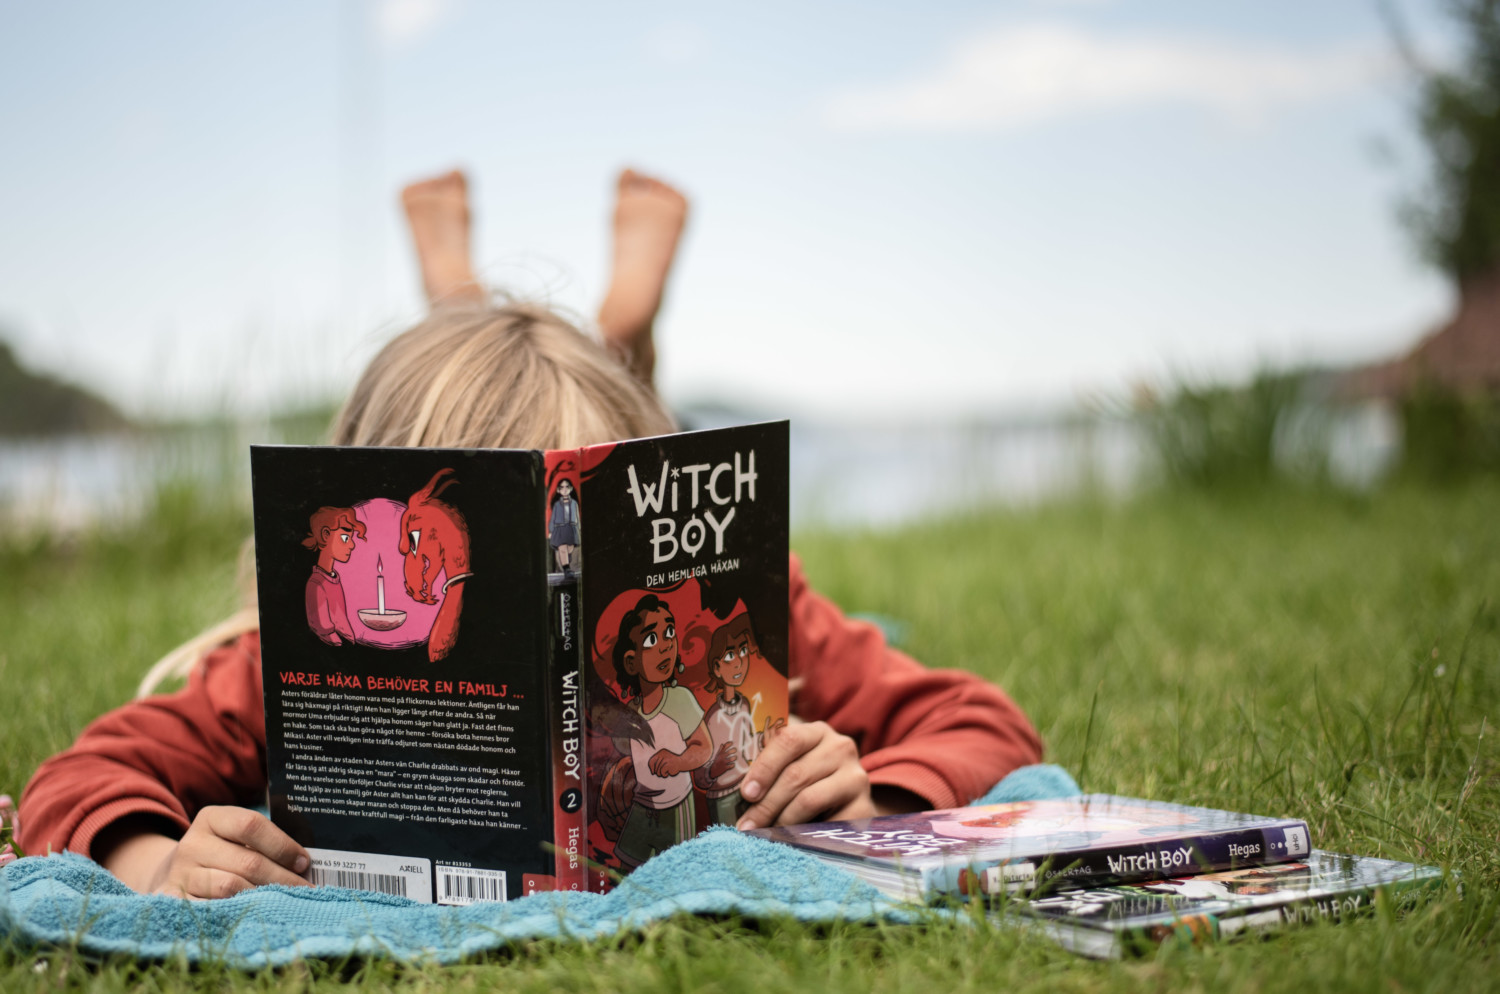 witch-boy-inkluderende-litteratur-for-barn